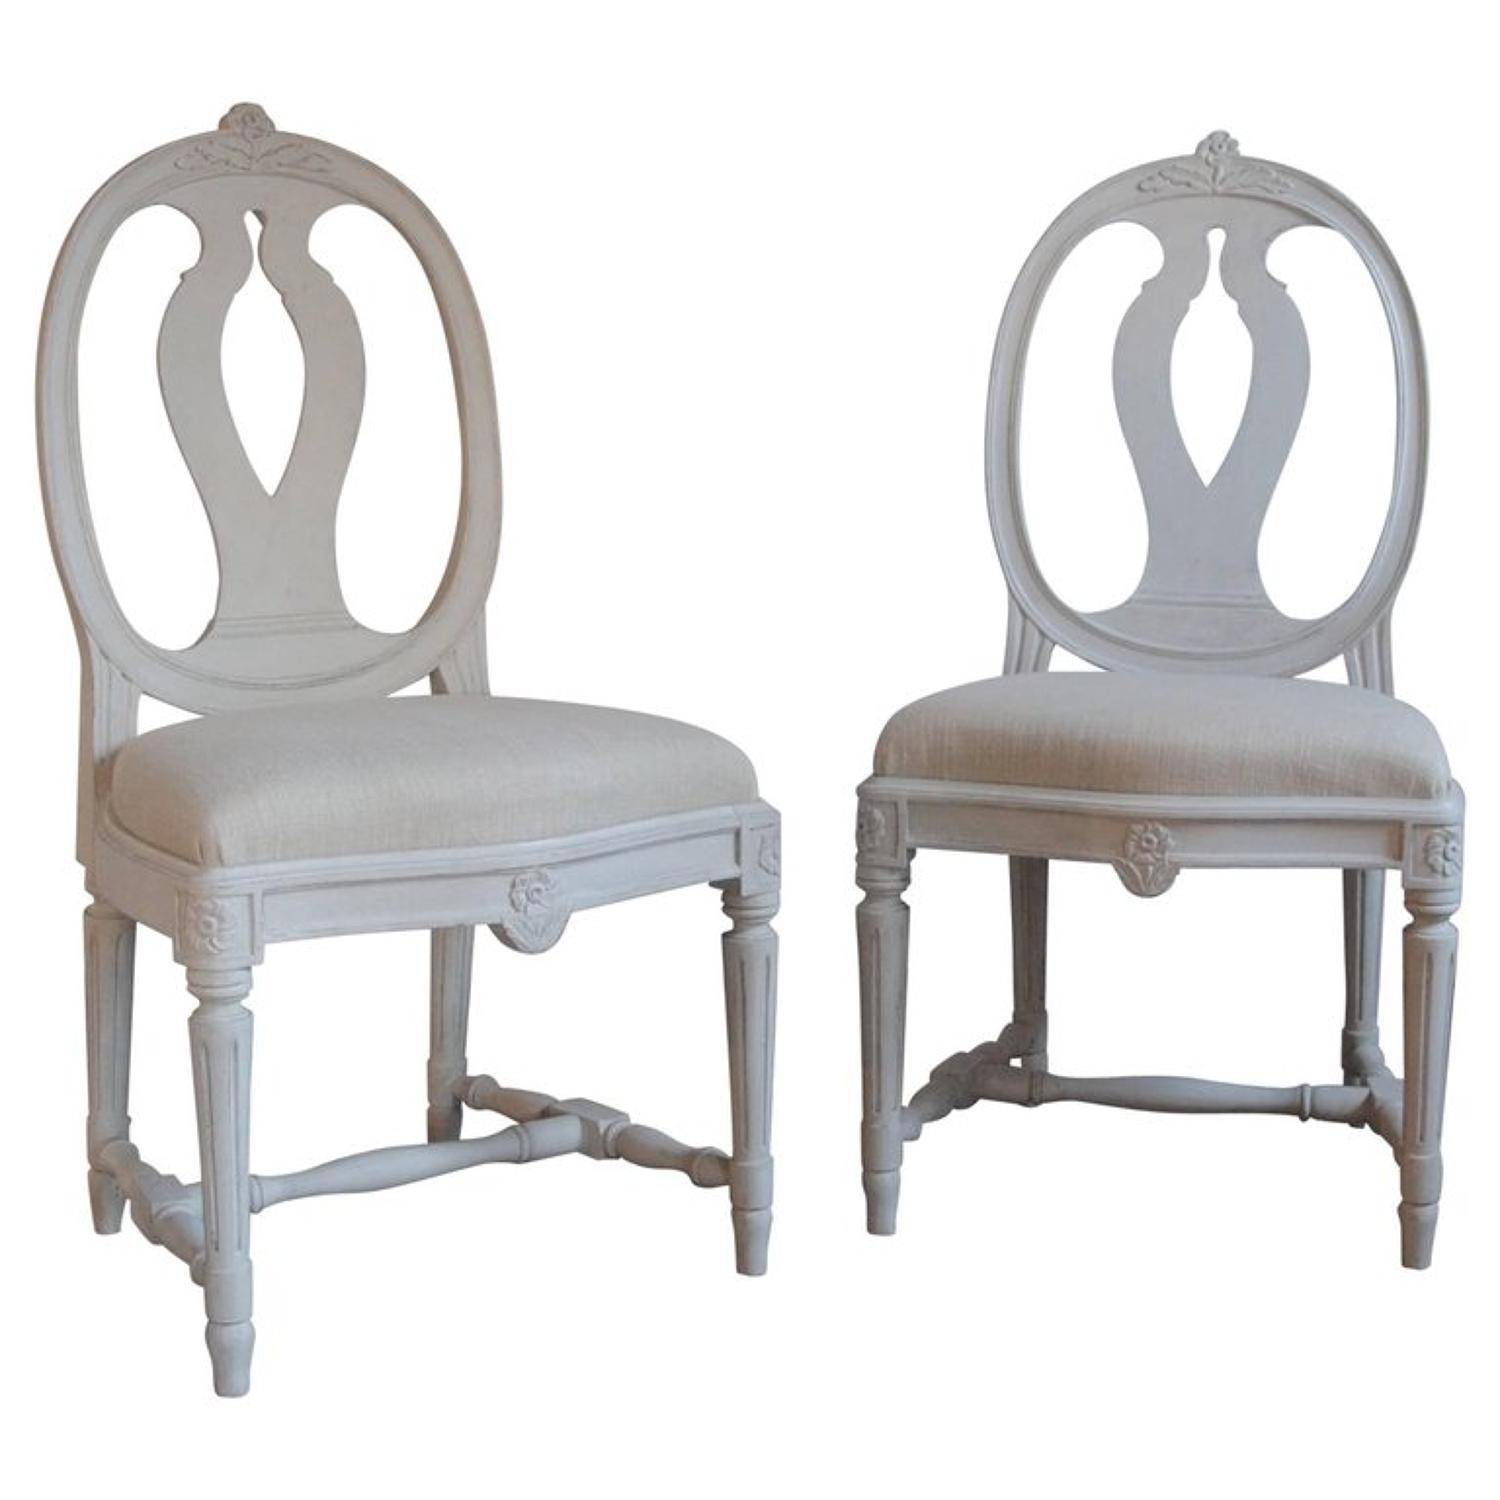 Pair of antique Gustavian style